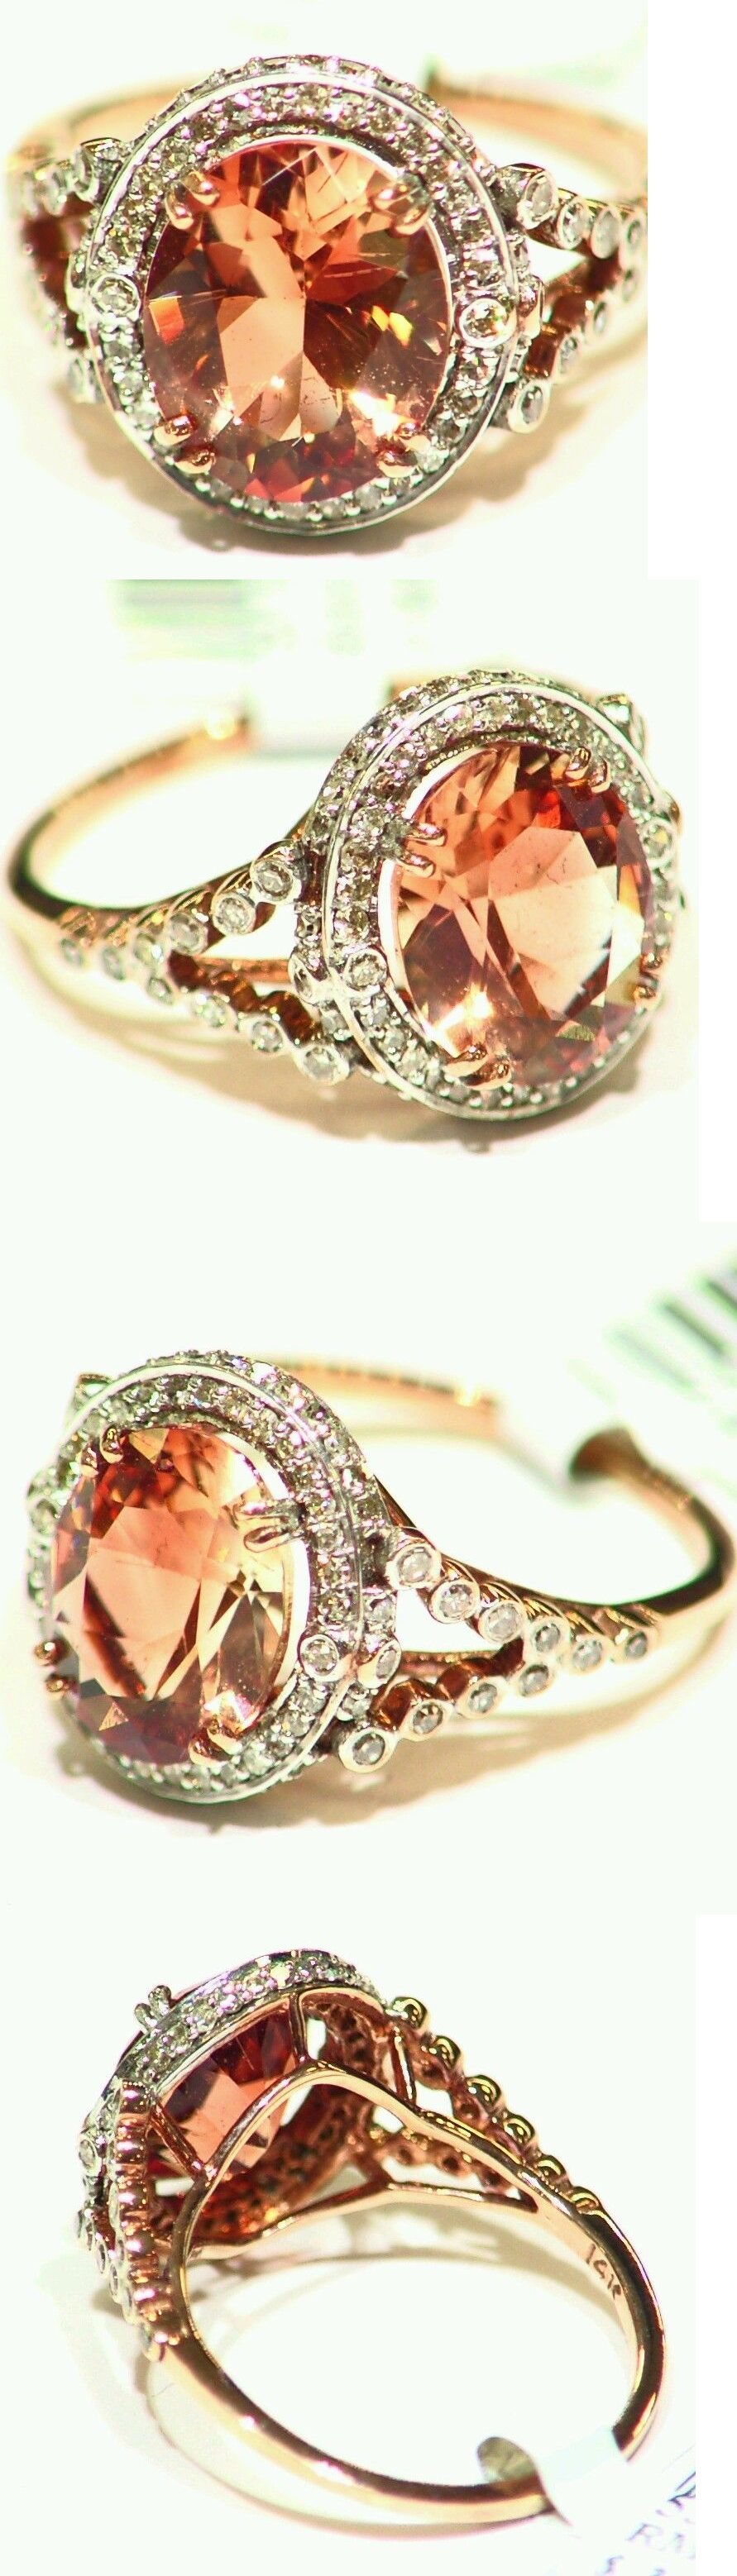 gold order made gemstone peach rings ring solitaire to oregon sunstone engagement p recycled fullxfull il in ethical